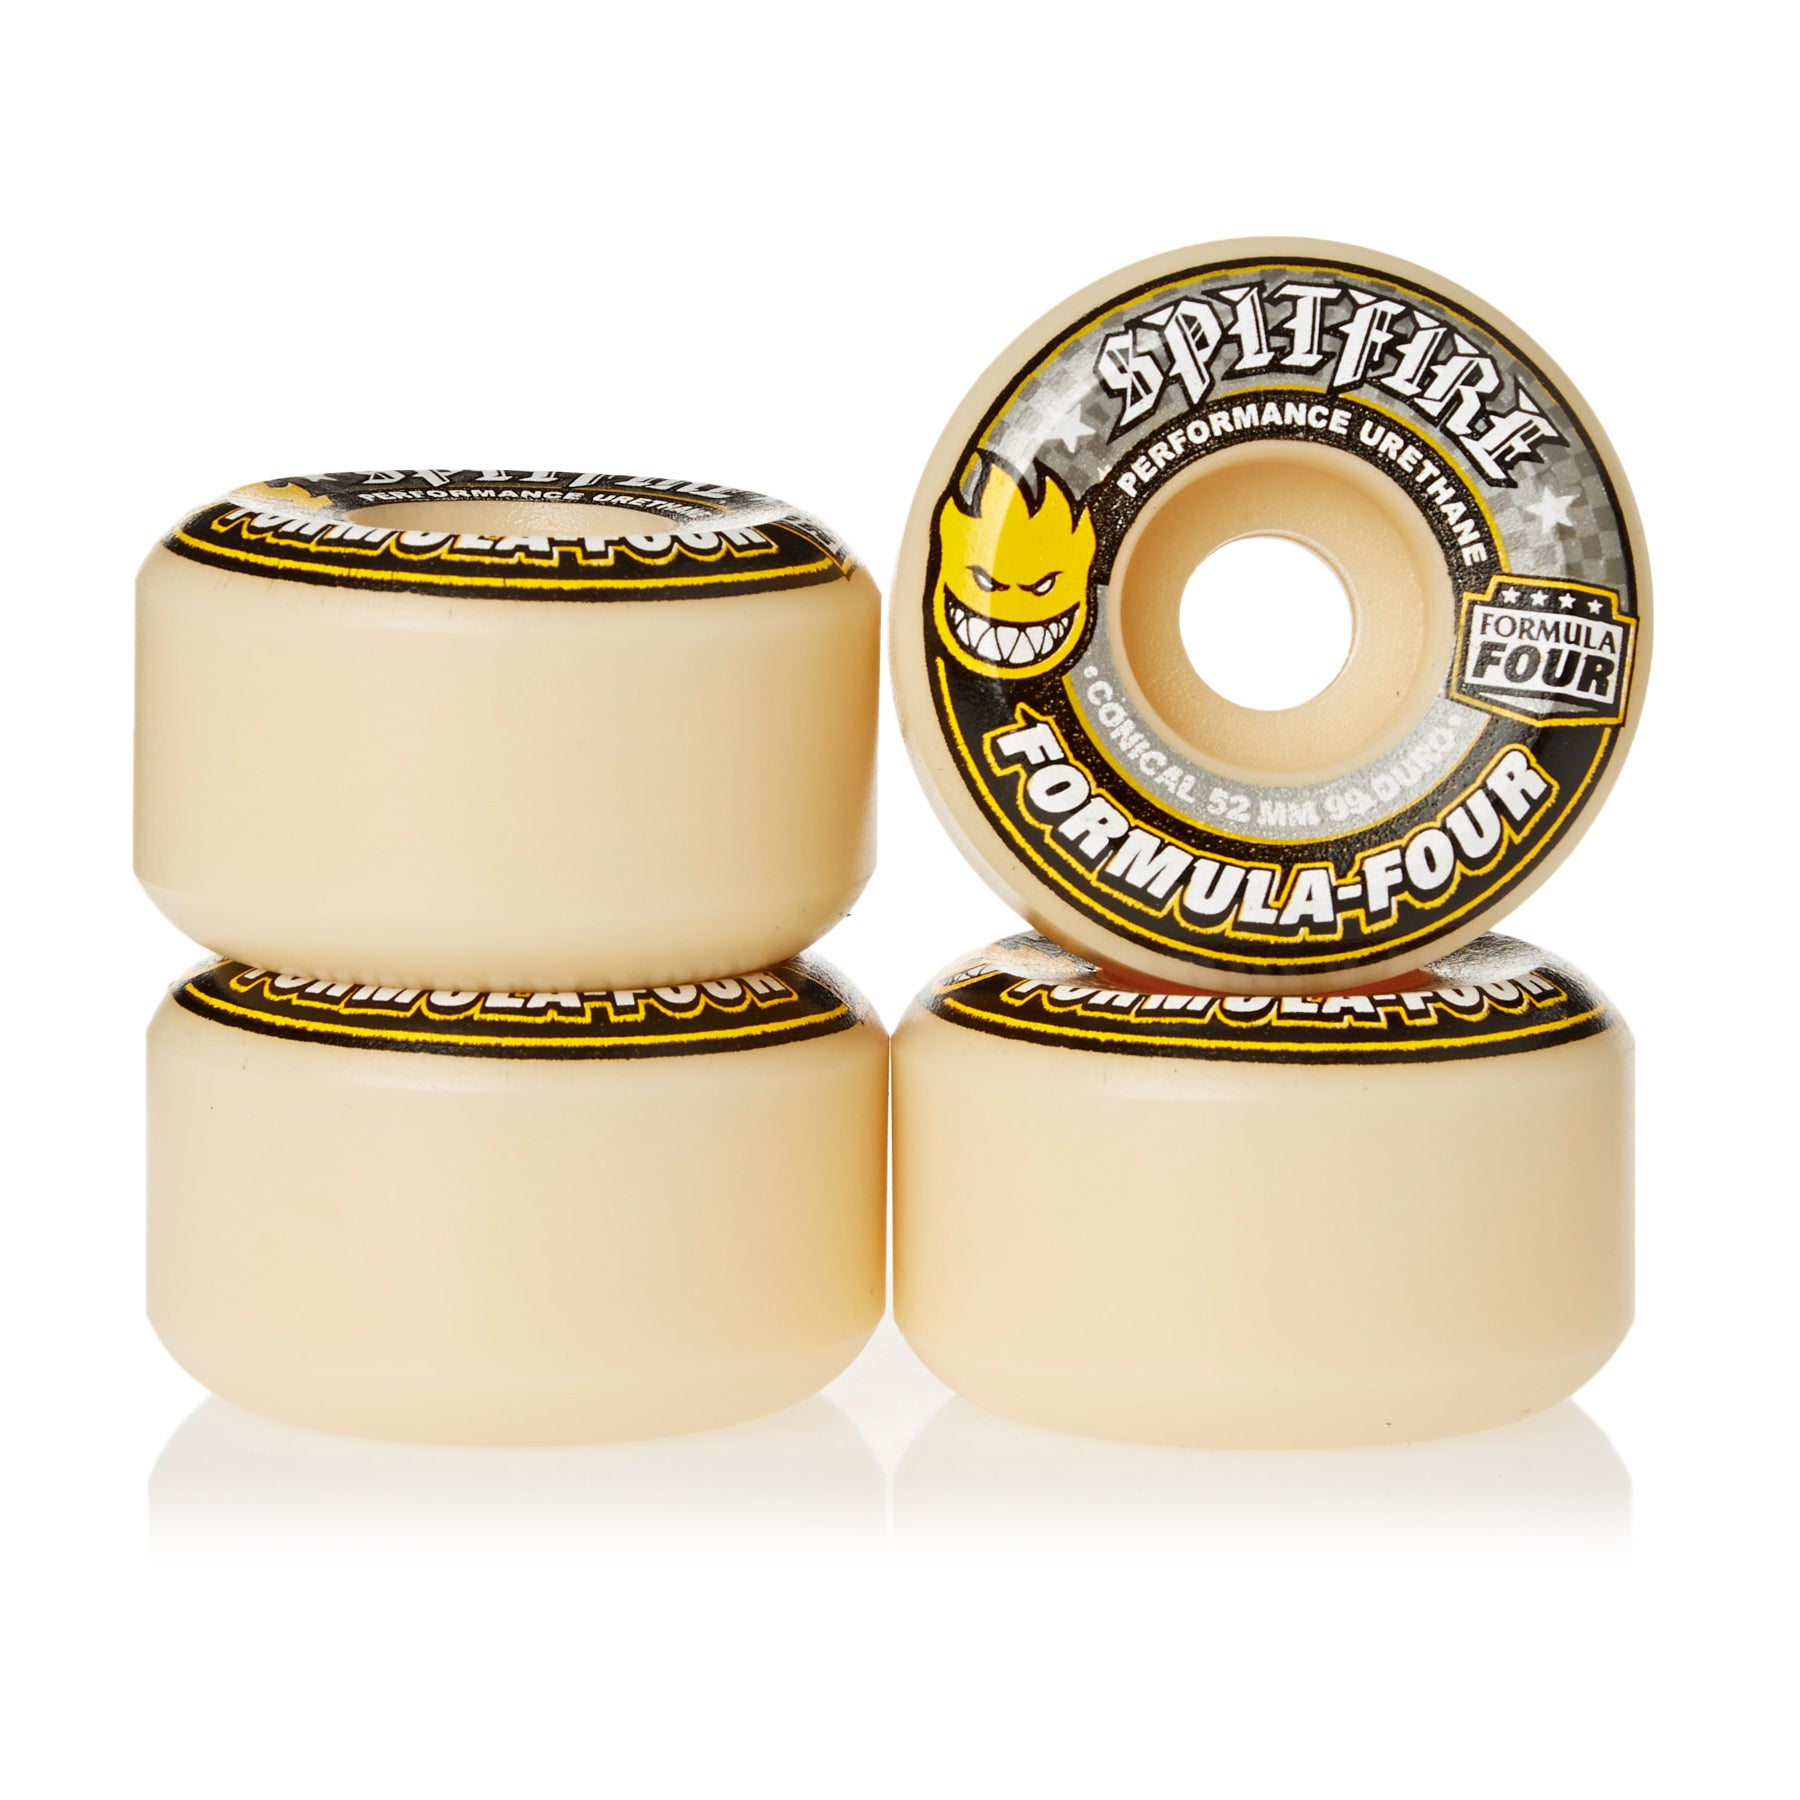 Spitfire Formula Four Wheels Conical 99DU Natural 52mm Skateboard Wheel - White